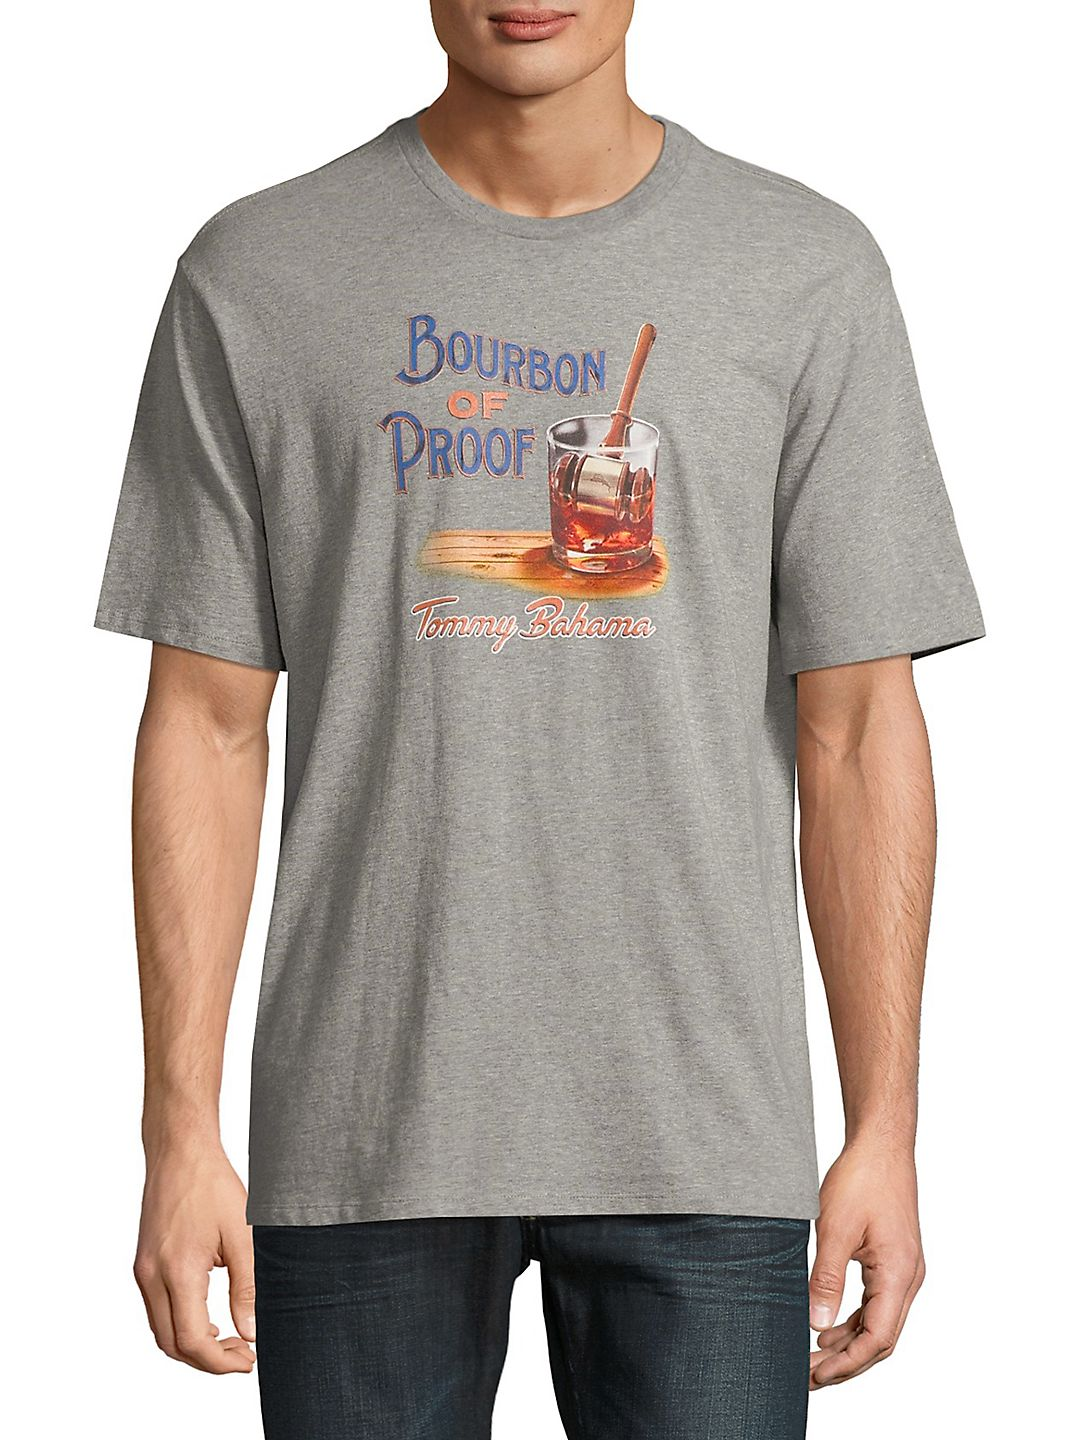 Bourbon of Proof Cotton Tee